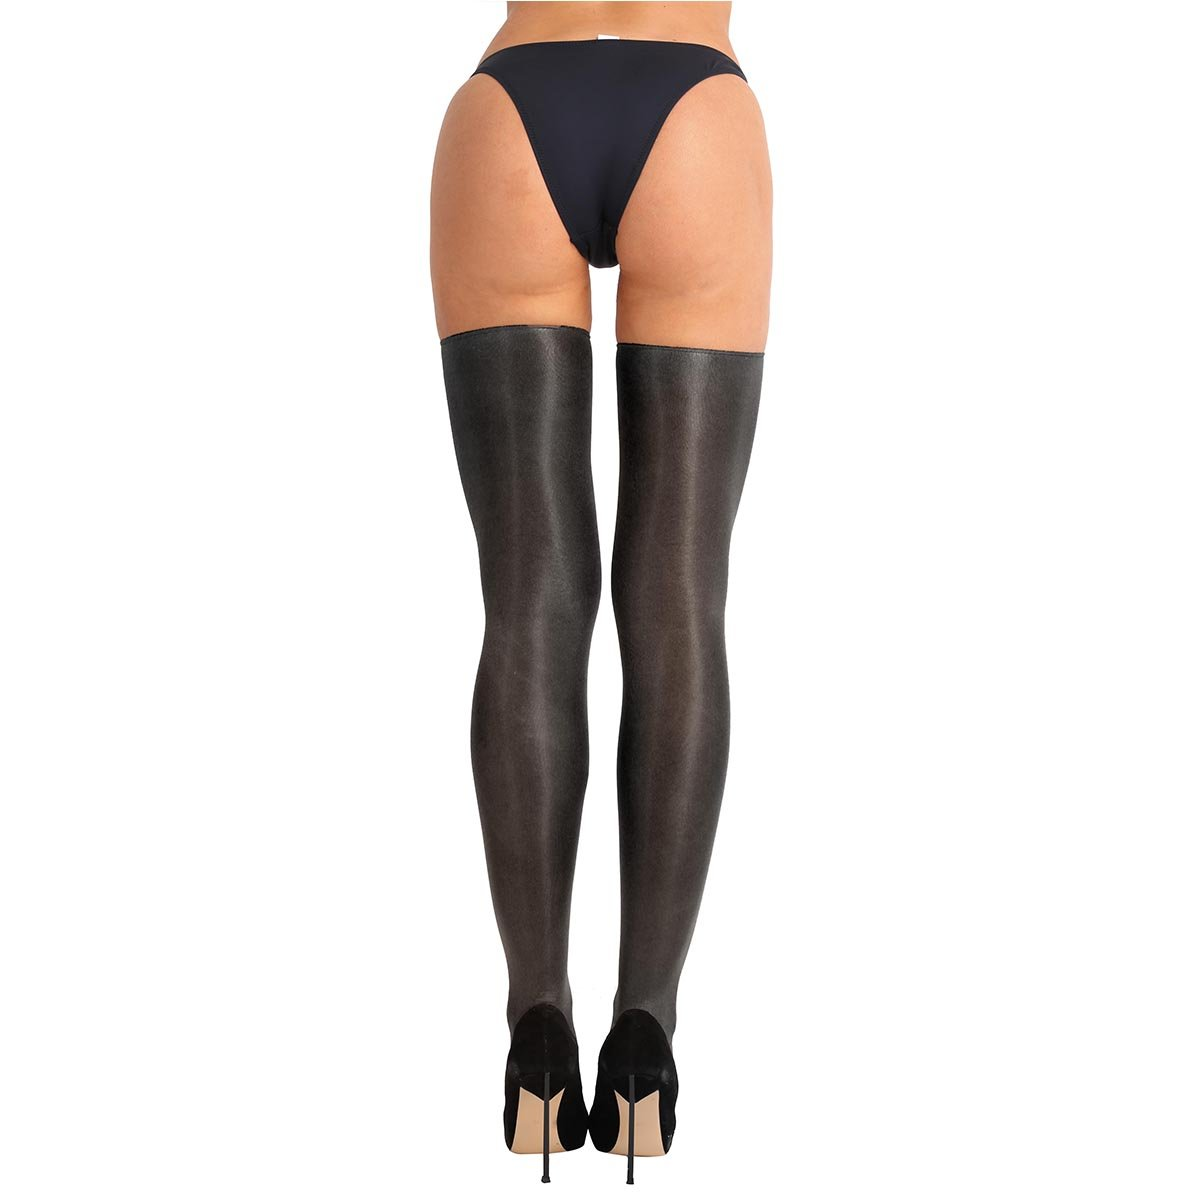 8355eeaa562 YiZYiF Women s Sheer Pantyhose Thigh High Shiny Silk Stockings Tights  Lingerie Black One Size at Amazon Women s Clothing store